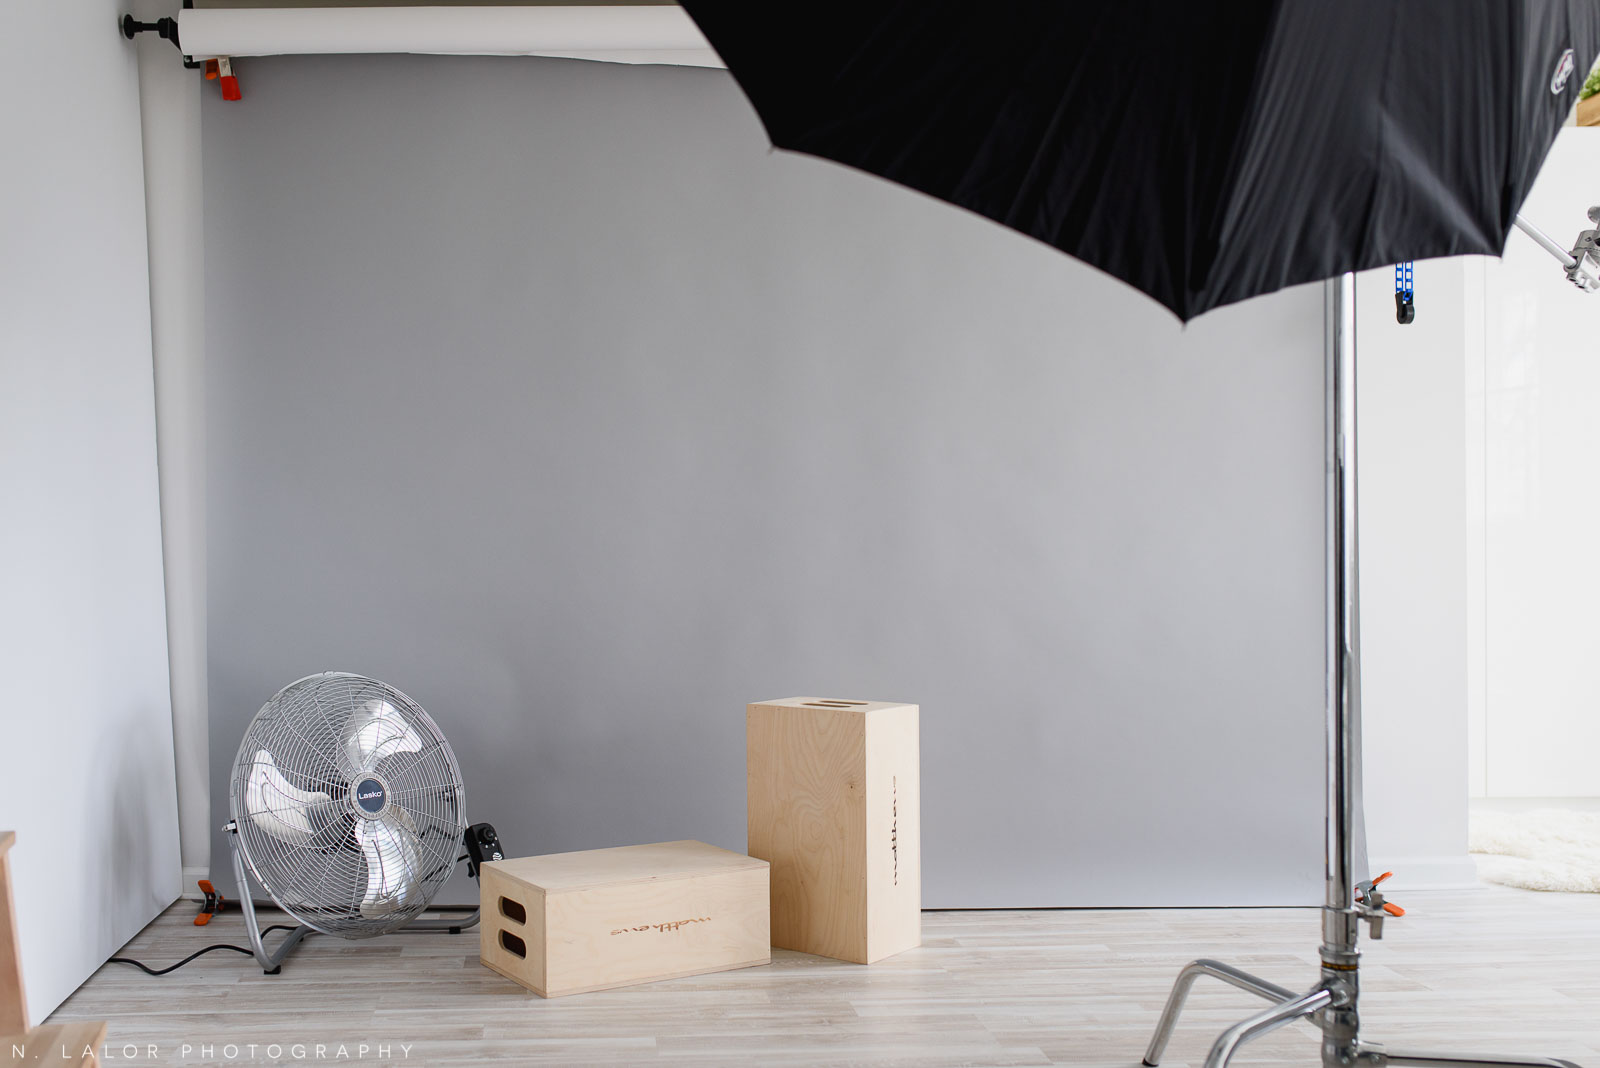 N. Lalor Photography Studio - shooting space, showing backdrop, posing boxes, fan, and light stand.